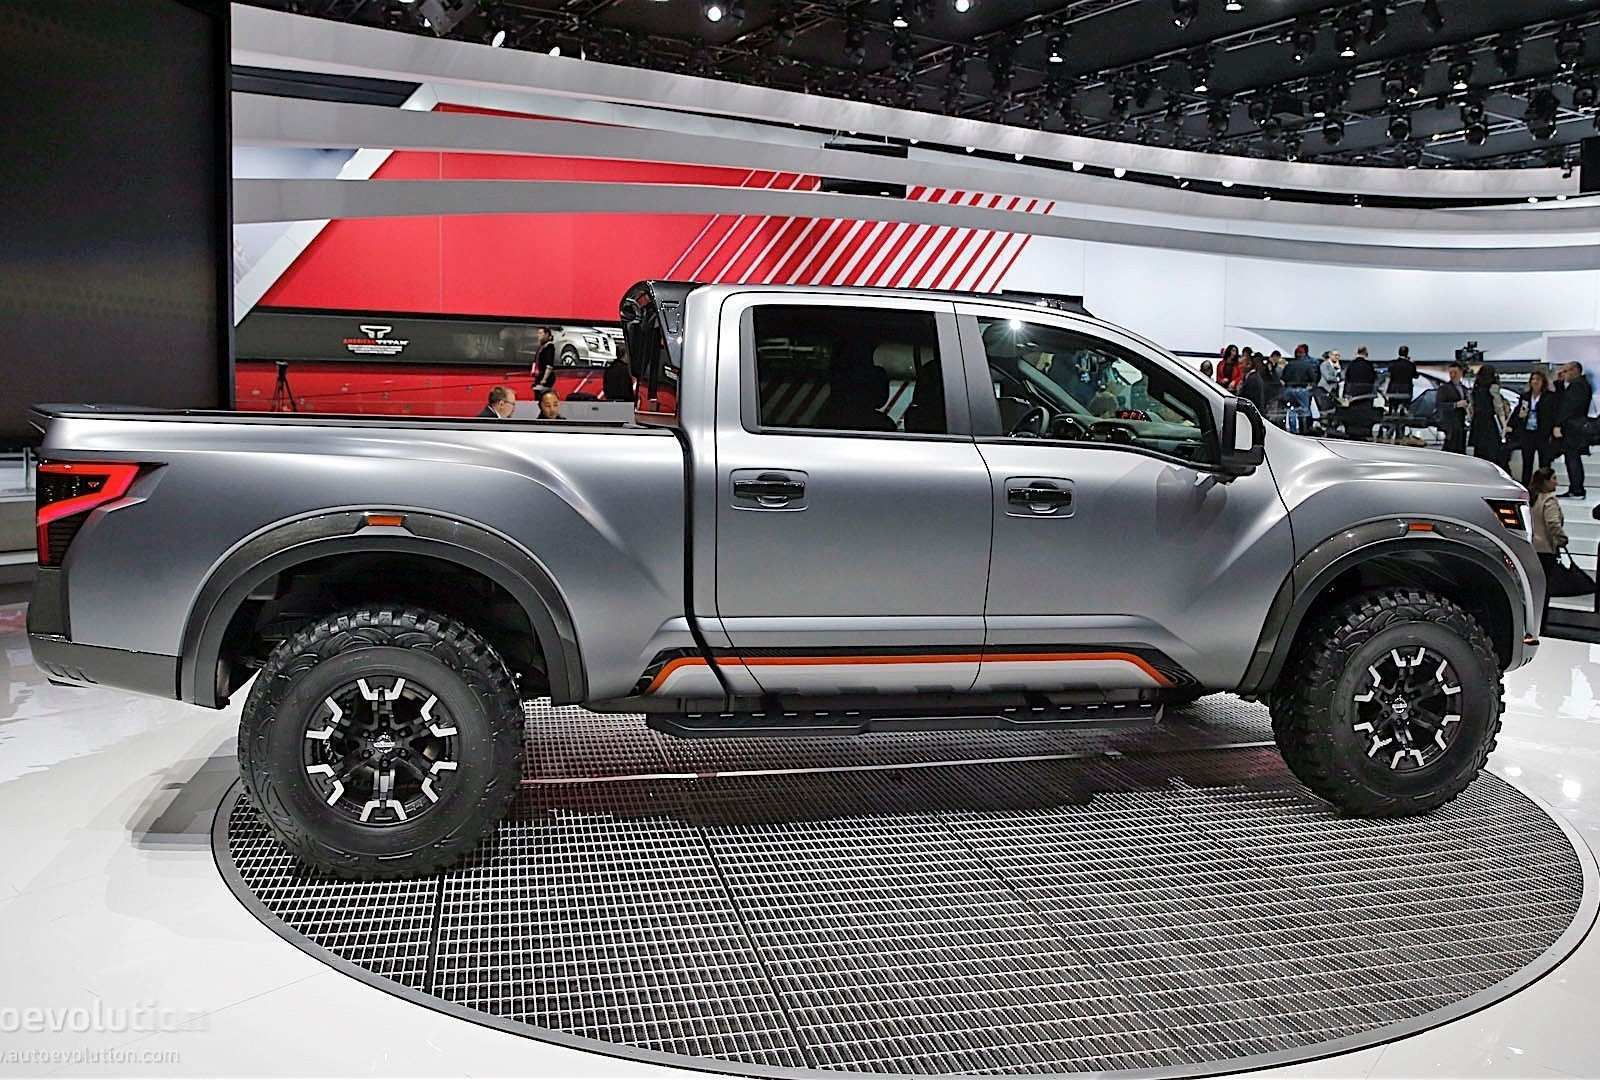 69 The Best 2020 Nissan Titan Xd Redesign And Concept